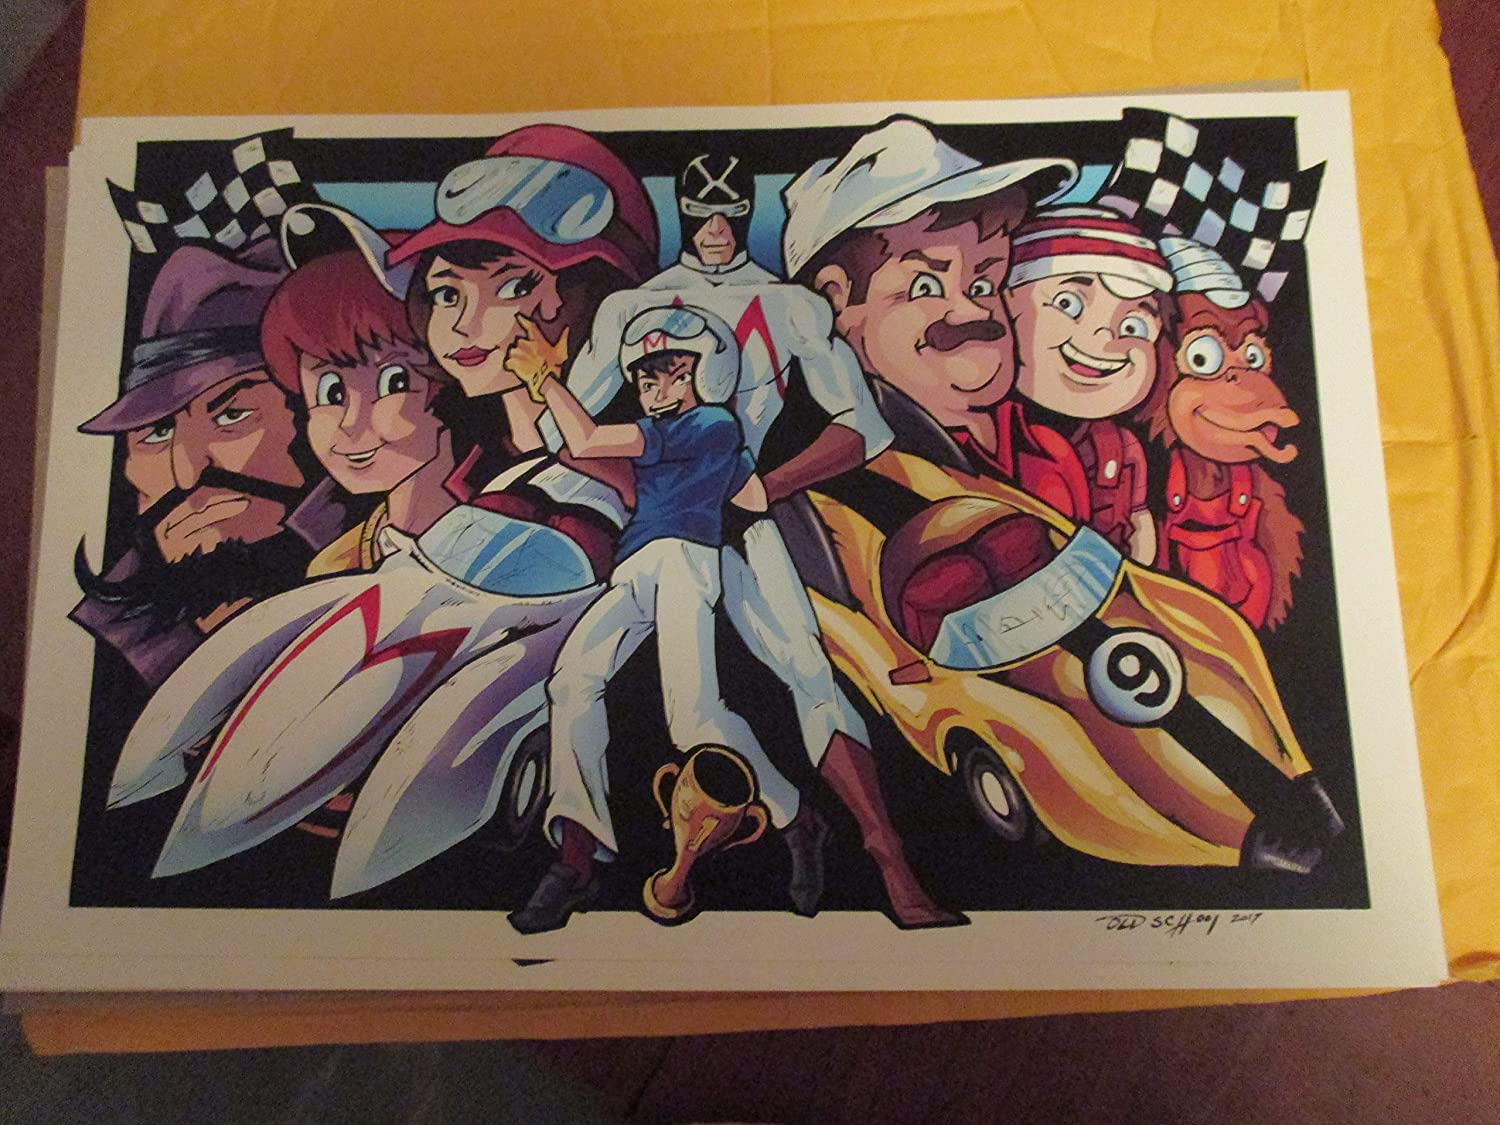 SPEED RACER COLOR!!LIMITED EDITION PRINT 11' By 17' 'THE ART OF OLD SCHOOL 'approved Dealer SPEED RACER COLOR!!LIMITED EDITION PRINT 11 By 17 ' THE ART OF OLD SCHOOL ' approved Dealer